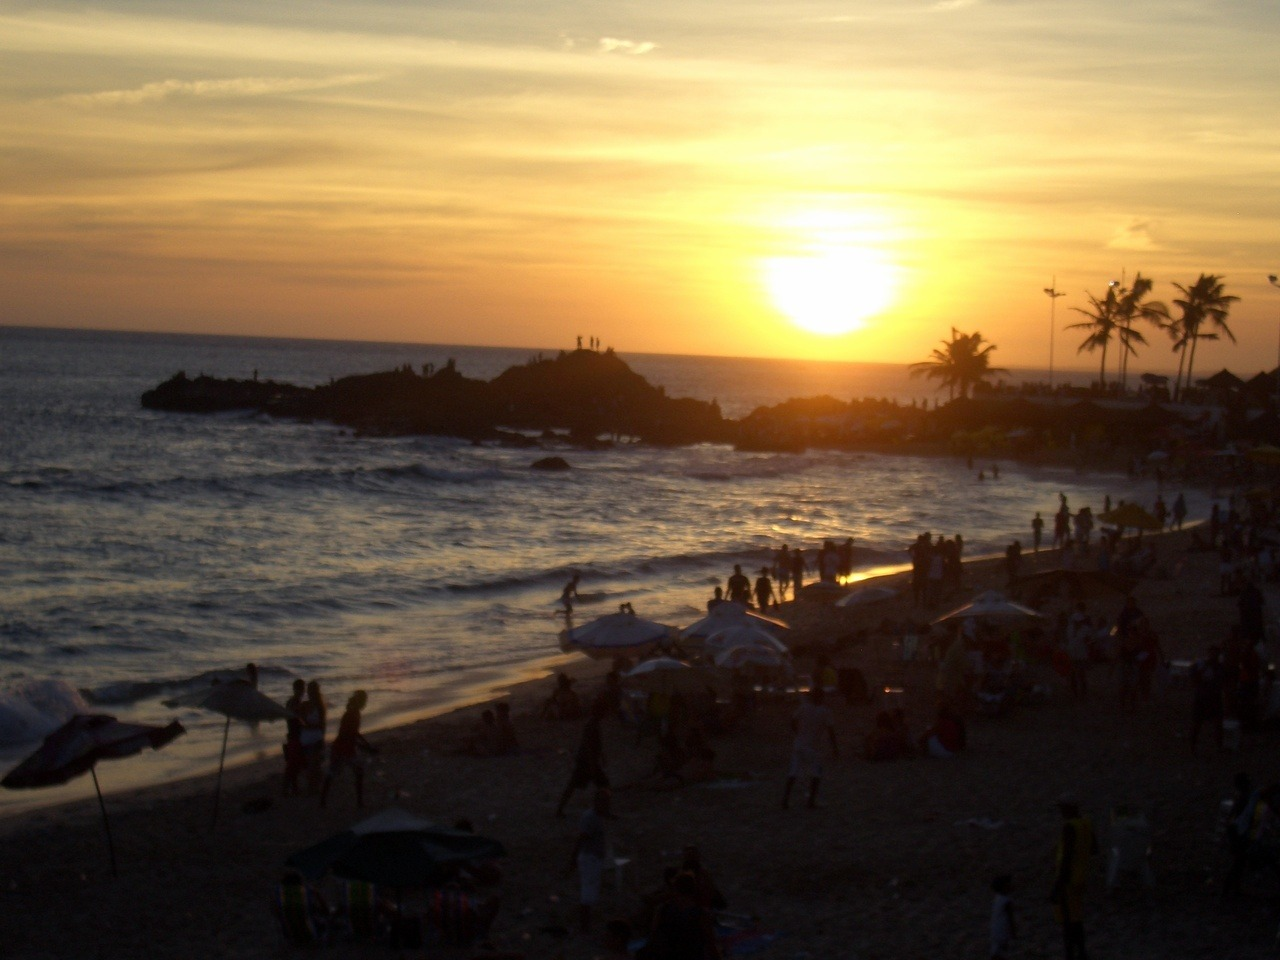 Sunset on the BeachSalvador, Brazil